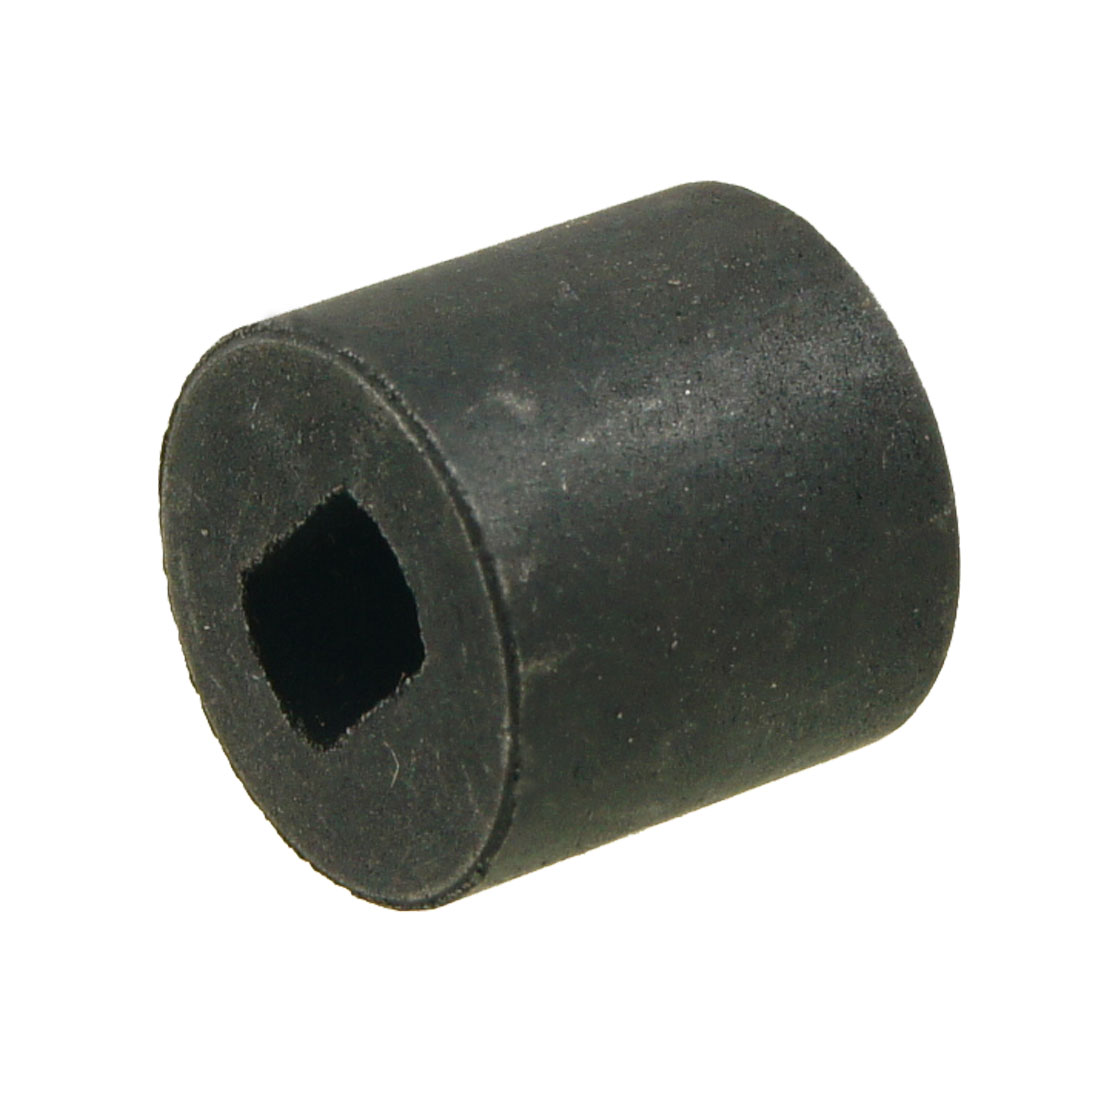 Cylinder Shape Metal Connector Replacement for LG Grinder